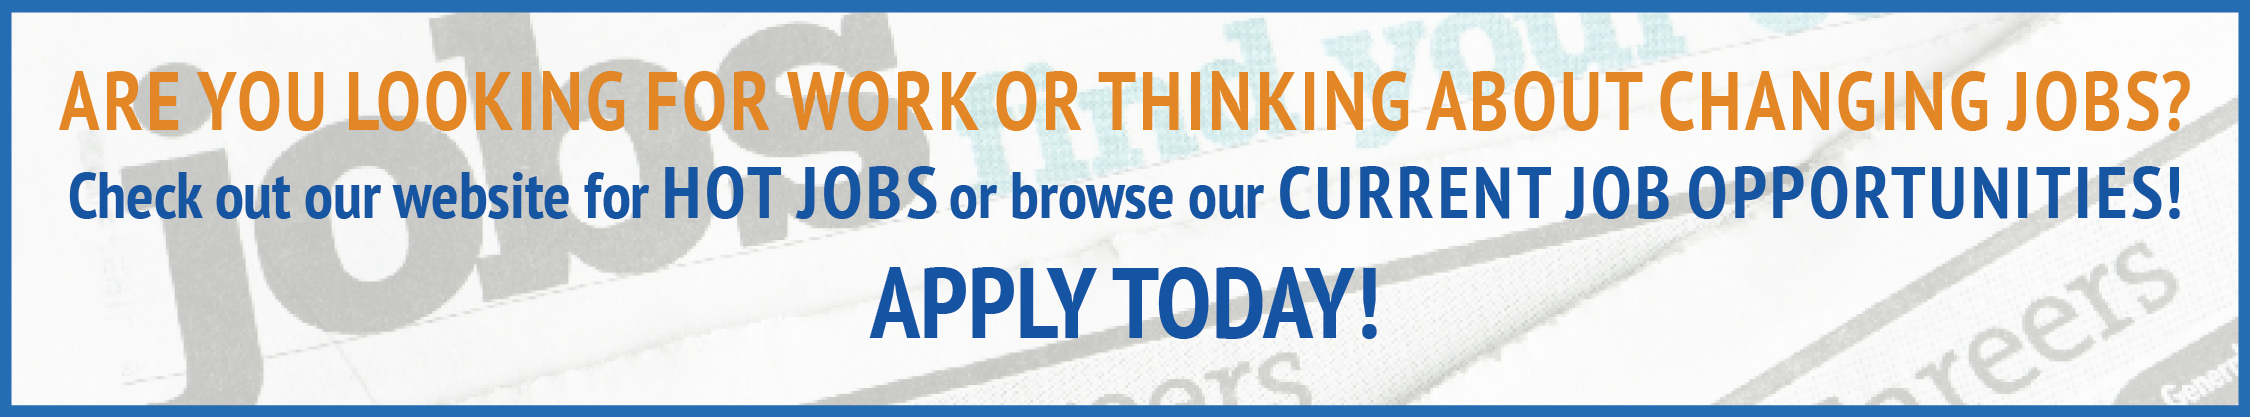 advertisement, are you looking for work or thinking about changing jobs